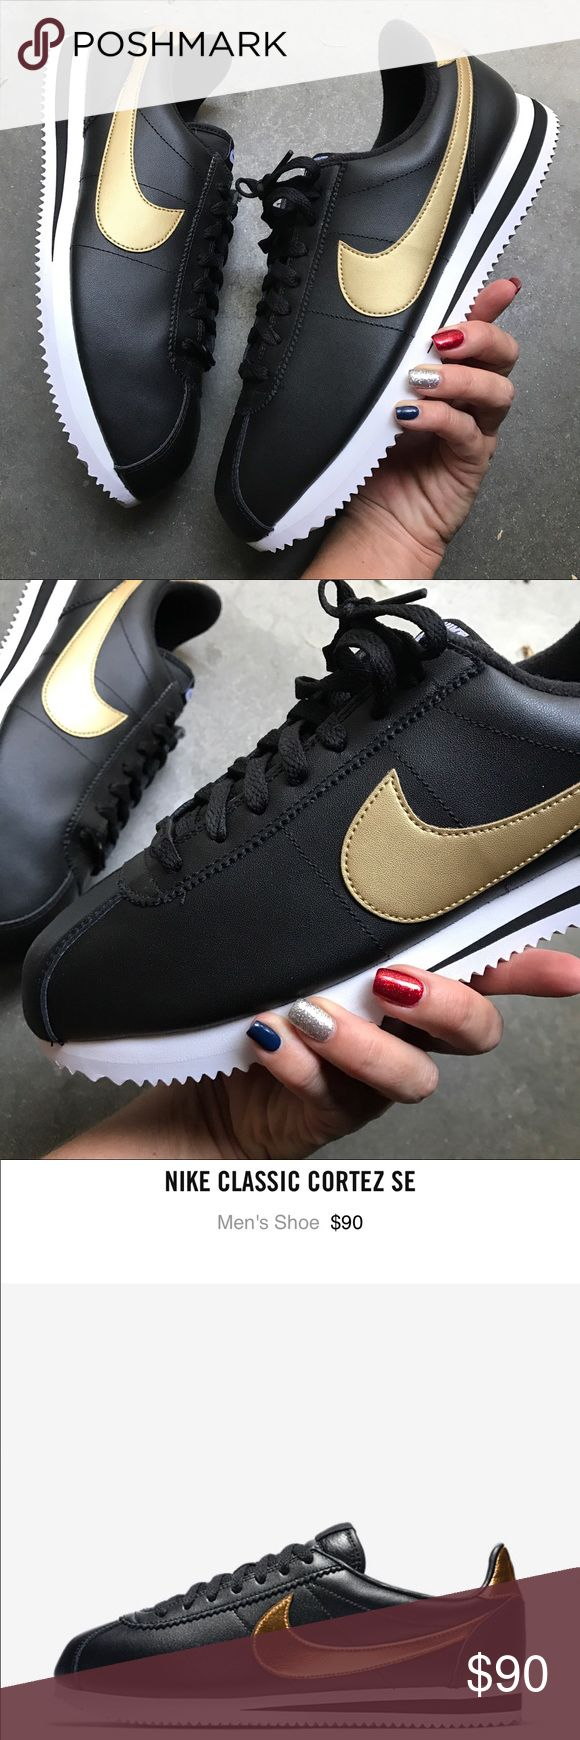 NEW | NIKE MENS CORTEZ SE LEATHER BLACK GOLD 11.5 New never worn 😍 NIKE CLASSIC CORTEZ | BLACK & GOLD LEATHER SPECIAL EDITION ALL LEATHER. EXTRA CORTEZ LACE CHARM.   NO ORIGINAL BOX, smoke free home. WILL SHIPPED BOXED AND SECURE.   PRICED FIRM. 100% authentic & direct from NIKE. Nike Shoes Athletic Shoes